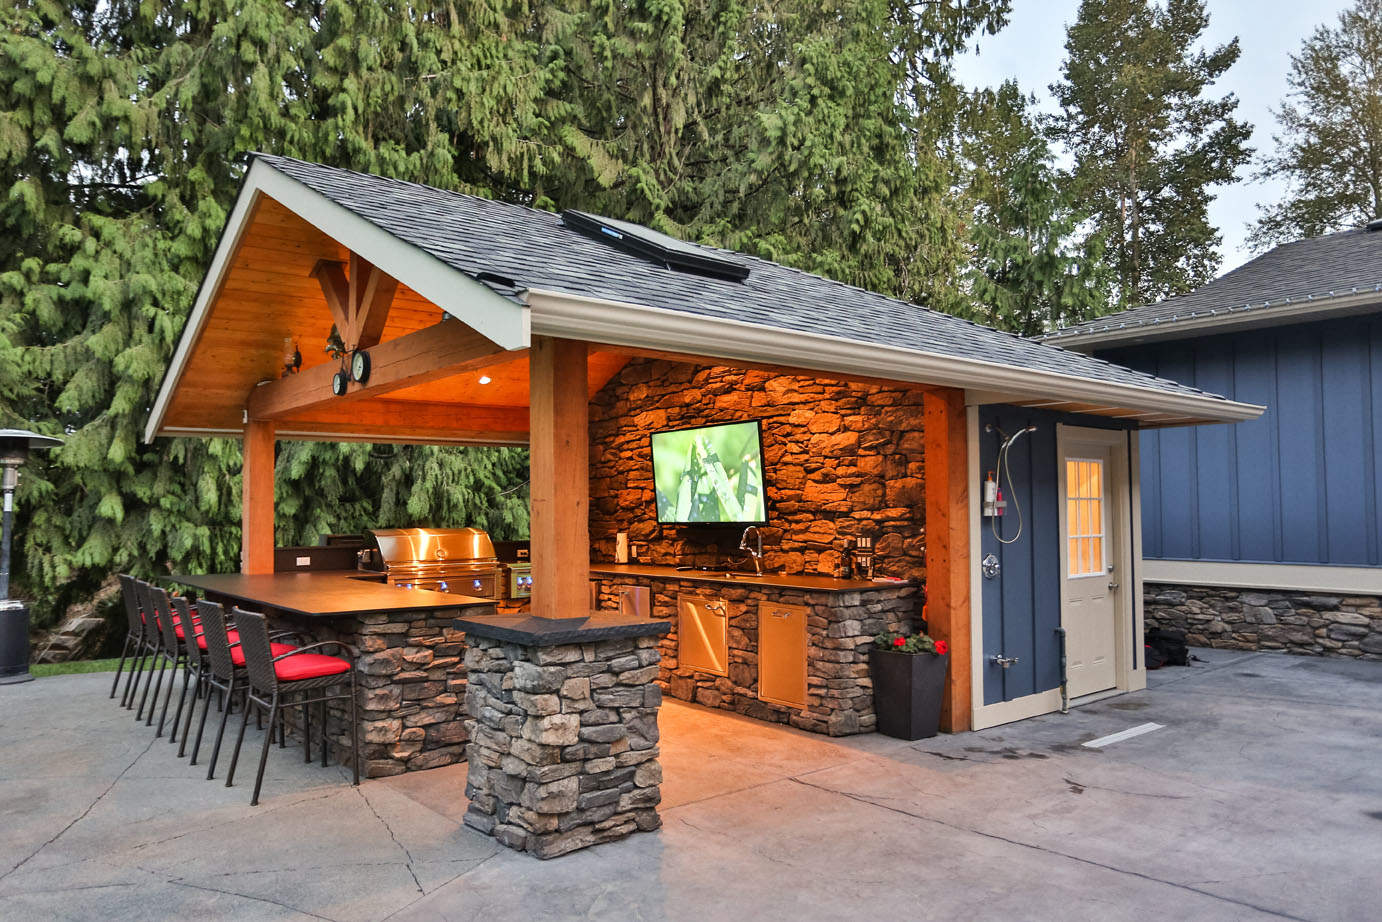 Year-round outdoor kitchen with stainless steel appliances